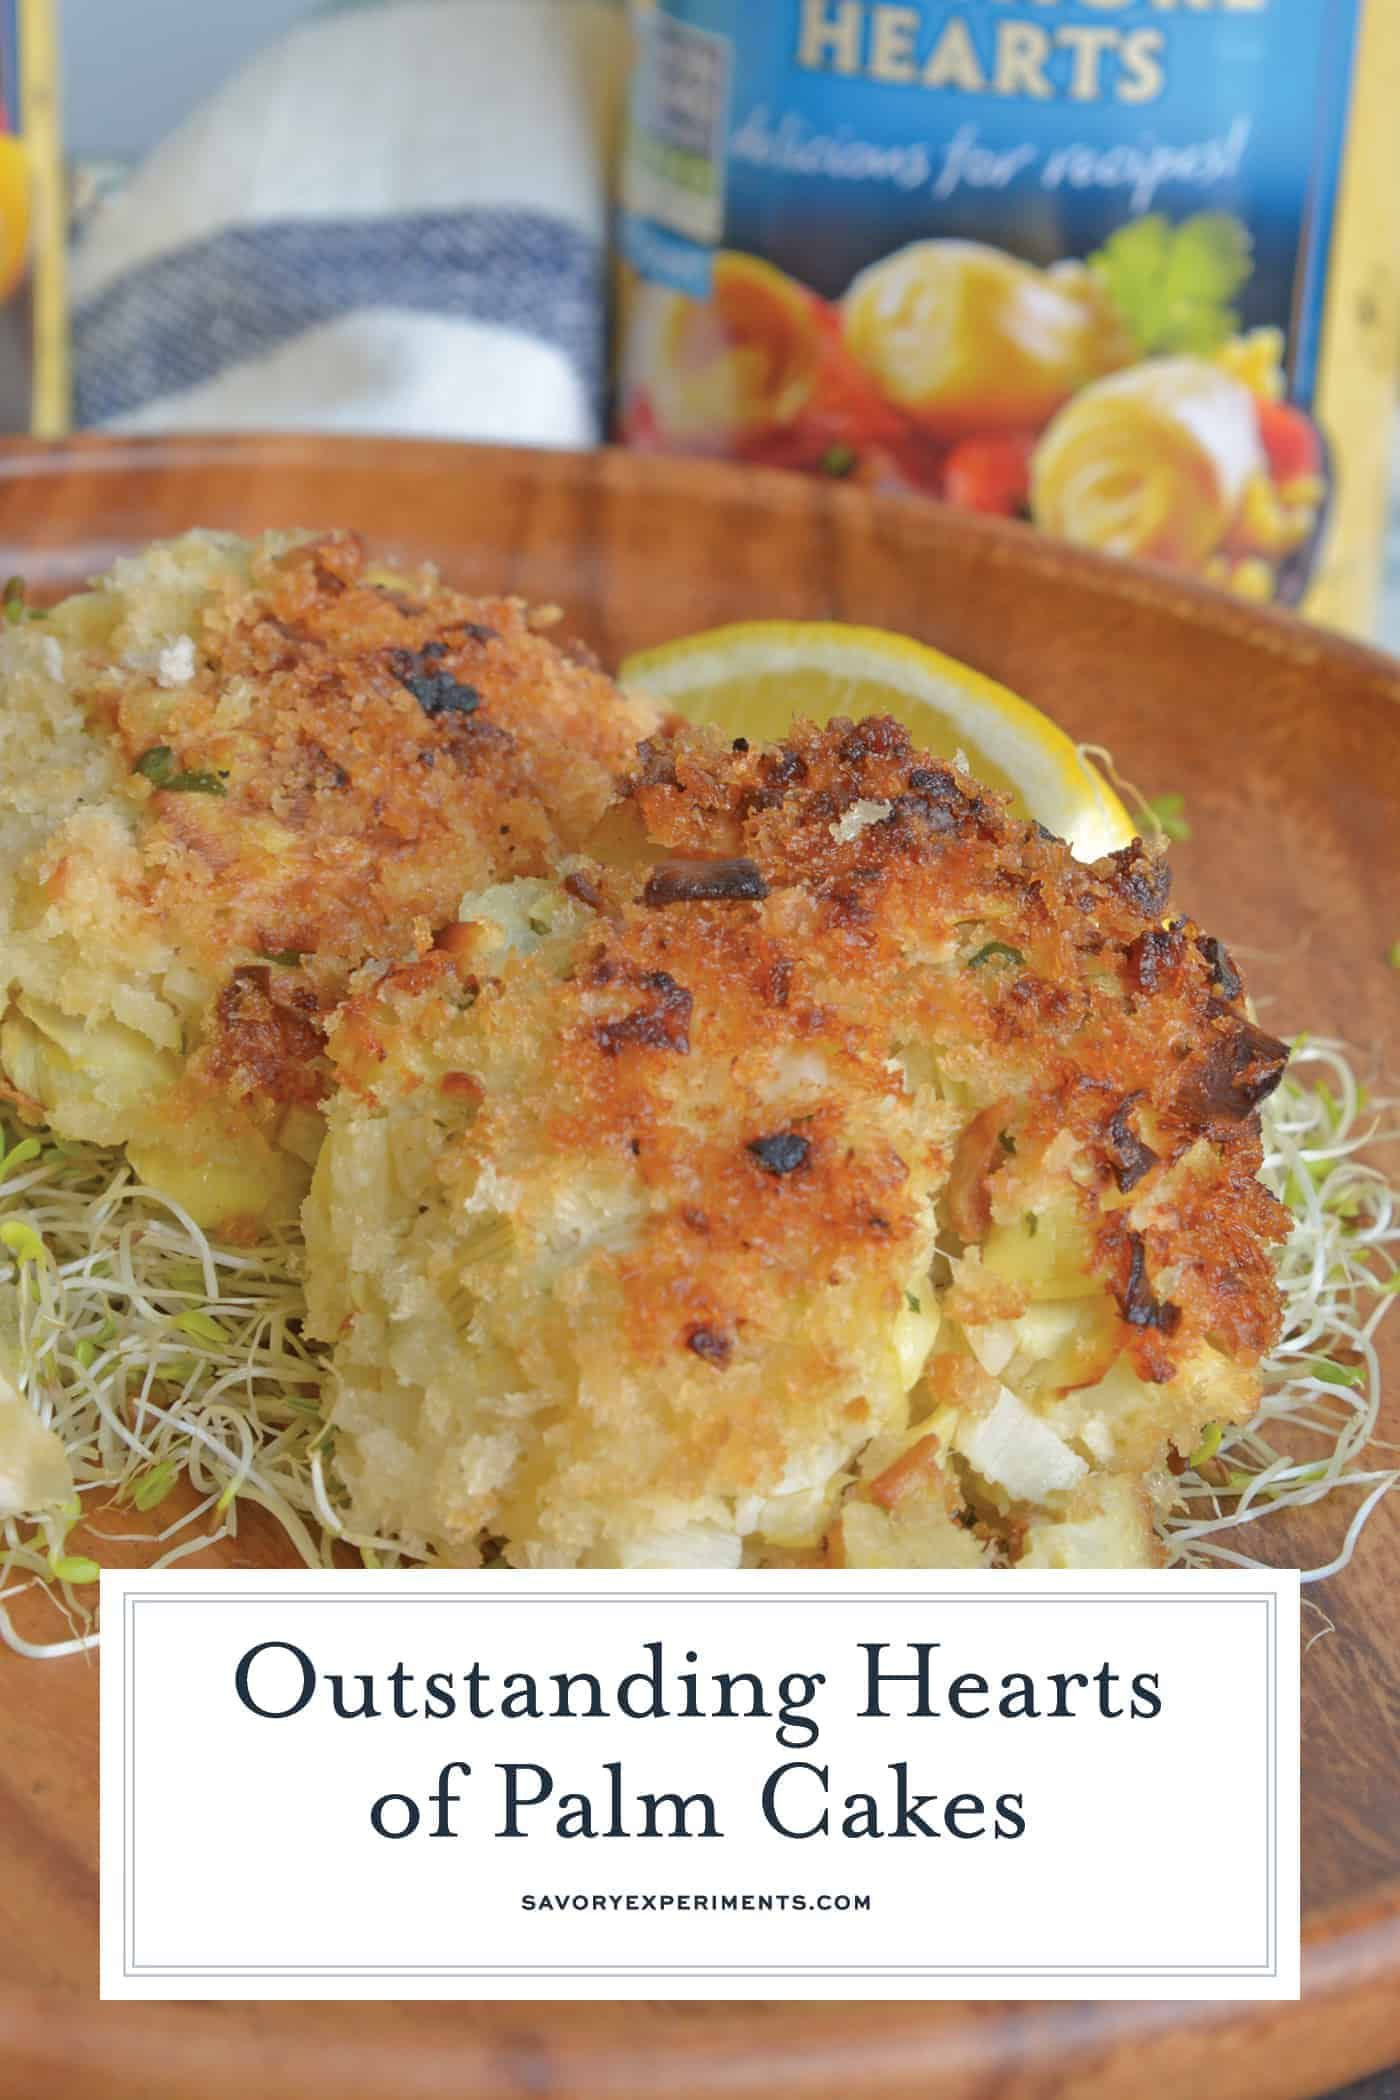 Hearts Of Palm Cakes Video Hearty Vegetarian Crab Cakes Side Dishes Sidedishes In 2020 Vegan Crab Cakes Vegan Crab Vegetarian Vegan Recipes